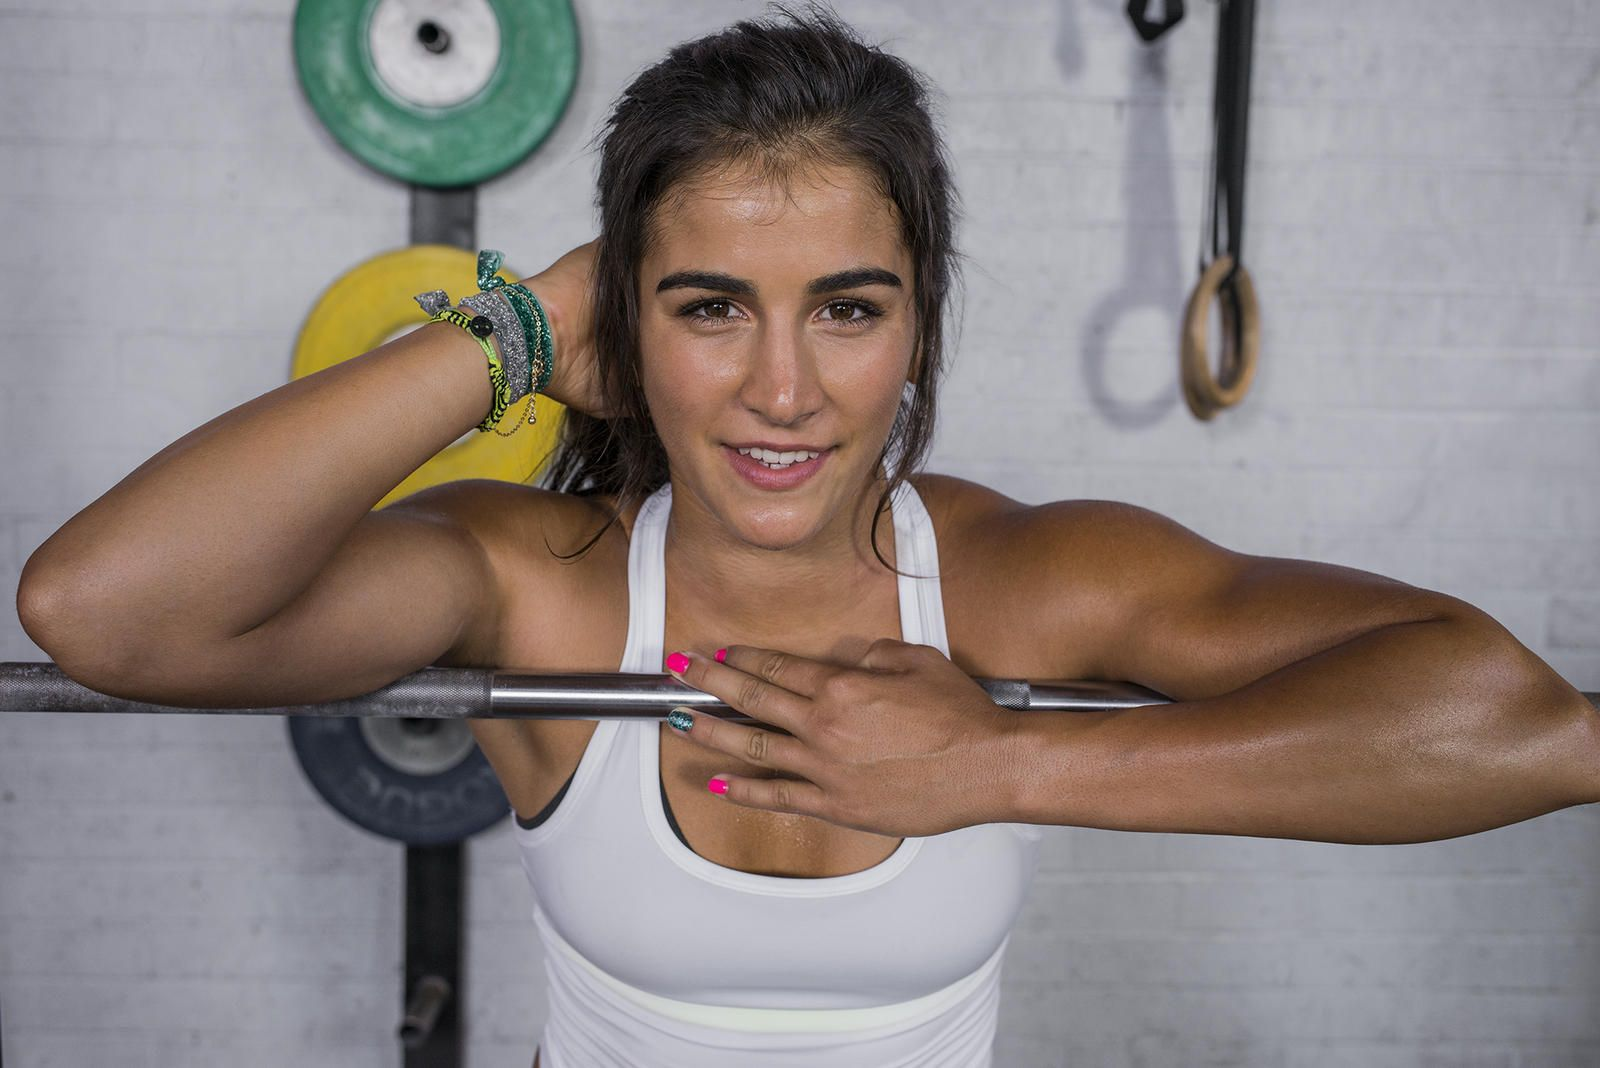 Lauren fisher lifts sprints and climbs in her new nike